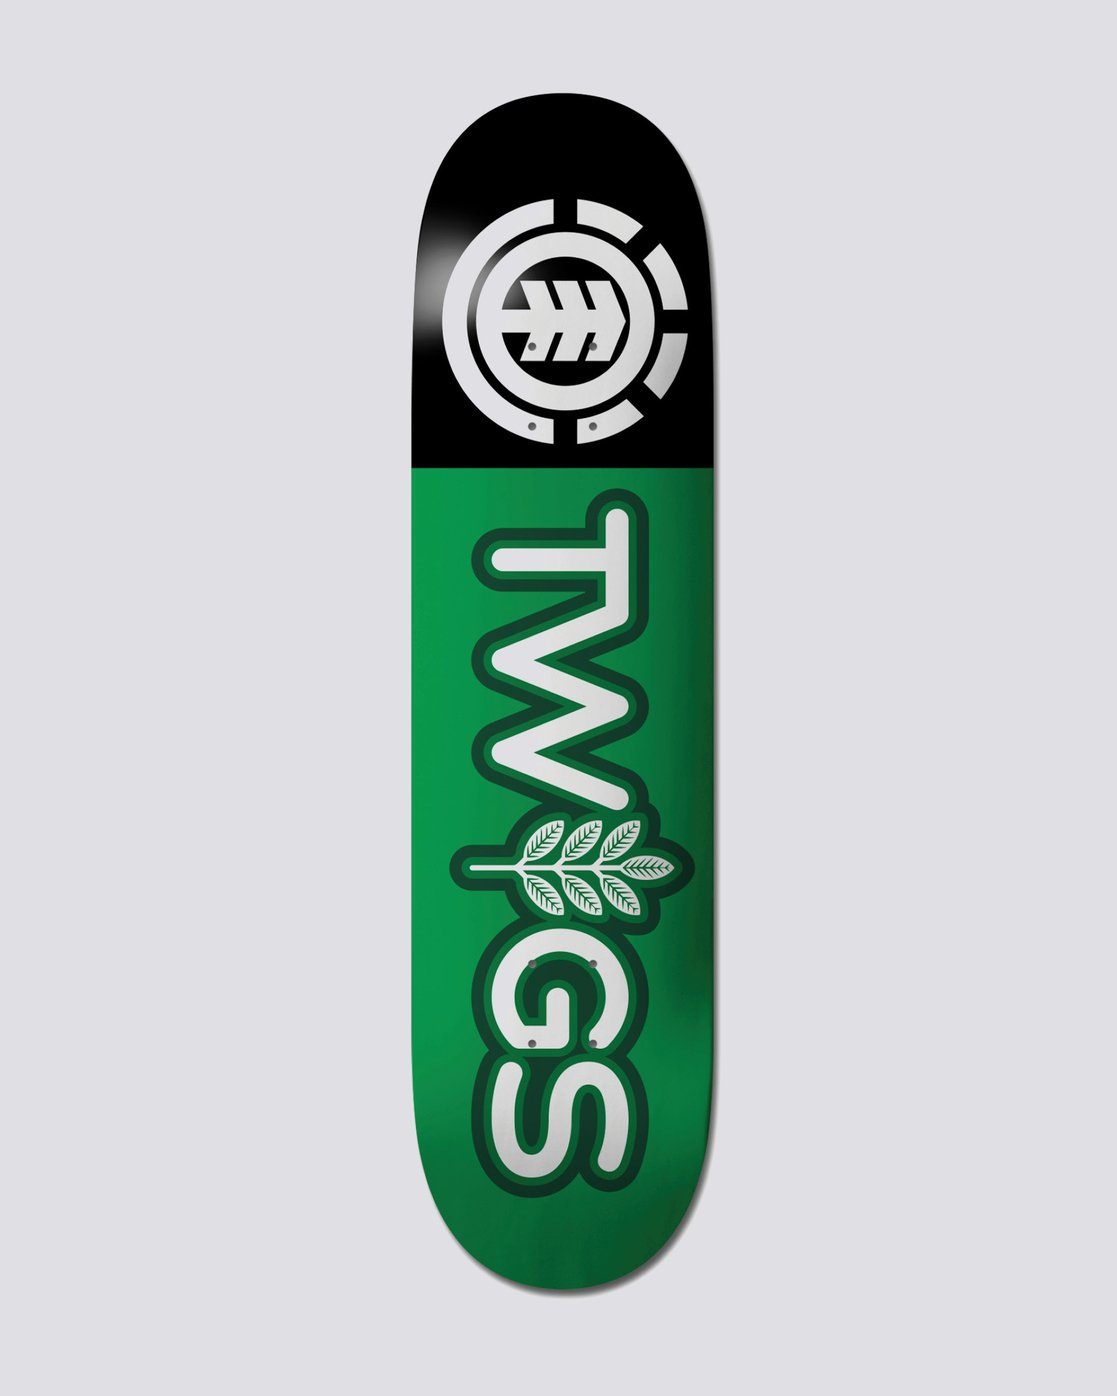 1 TWIGS LOGO  BDLGTTWG Element